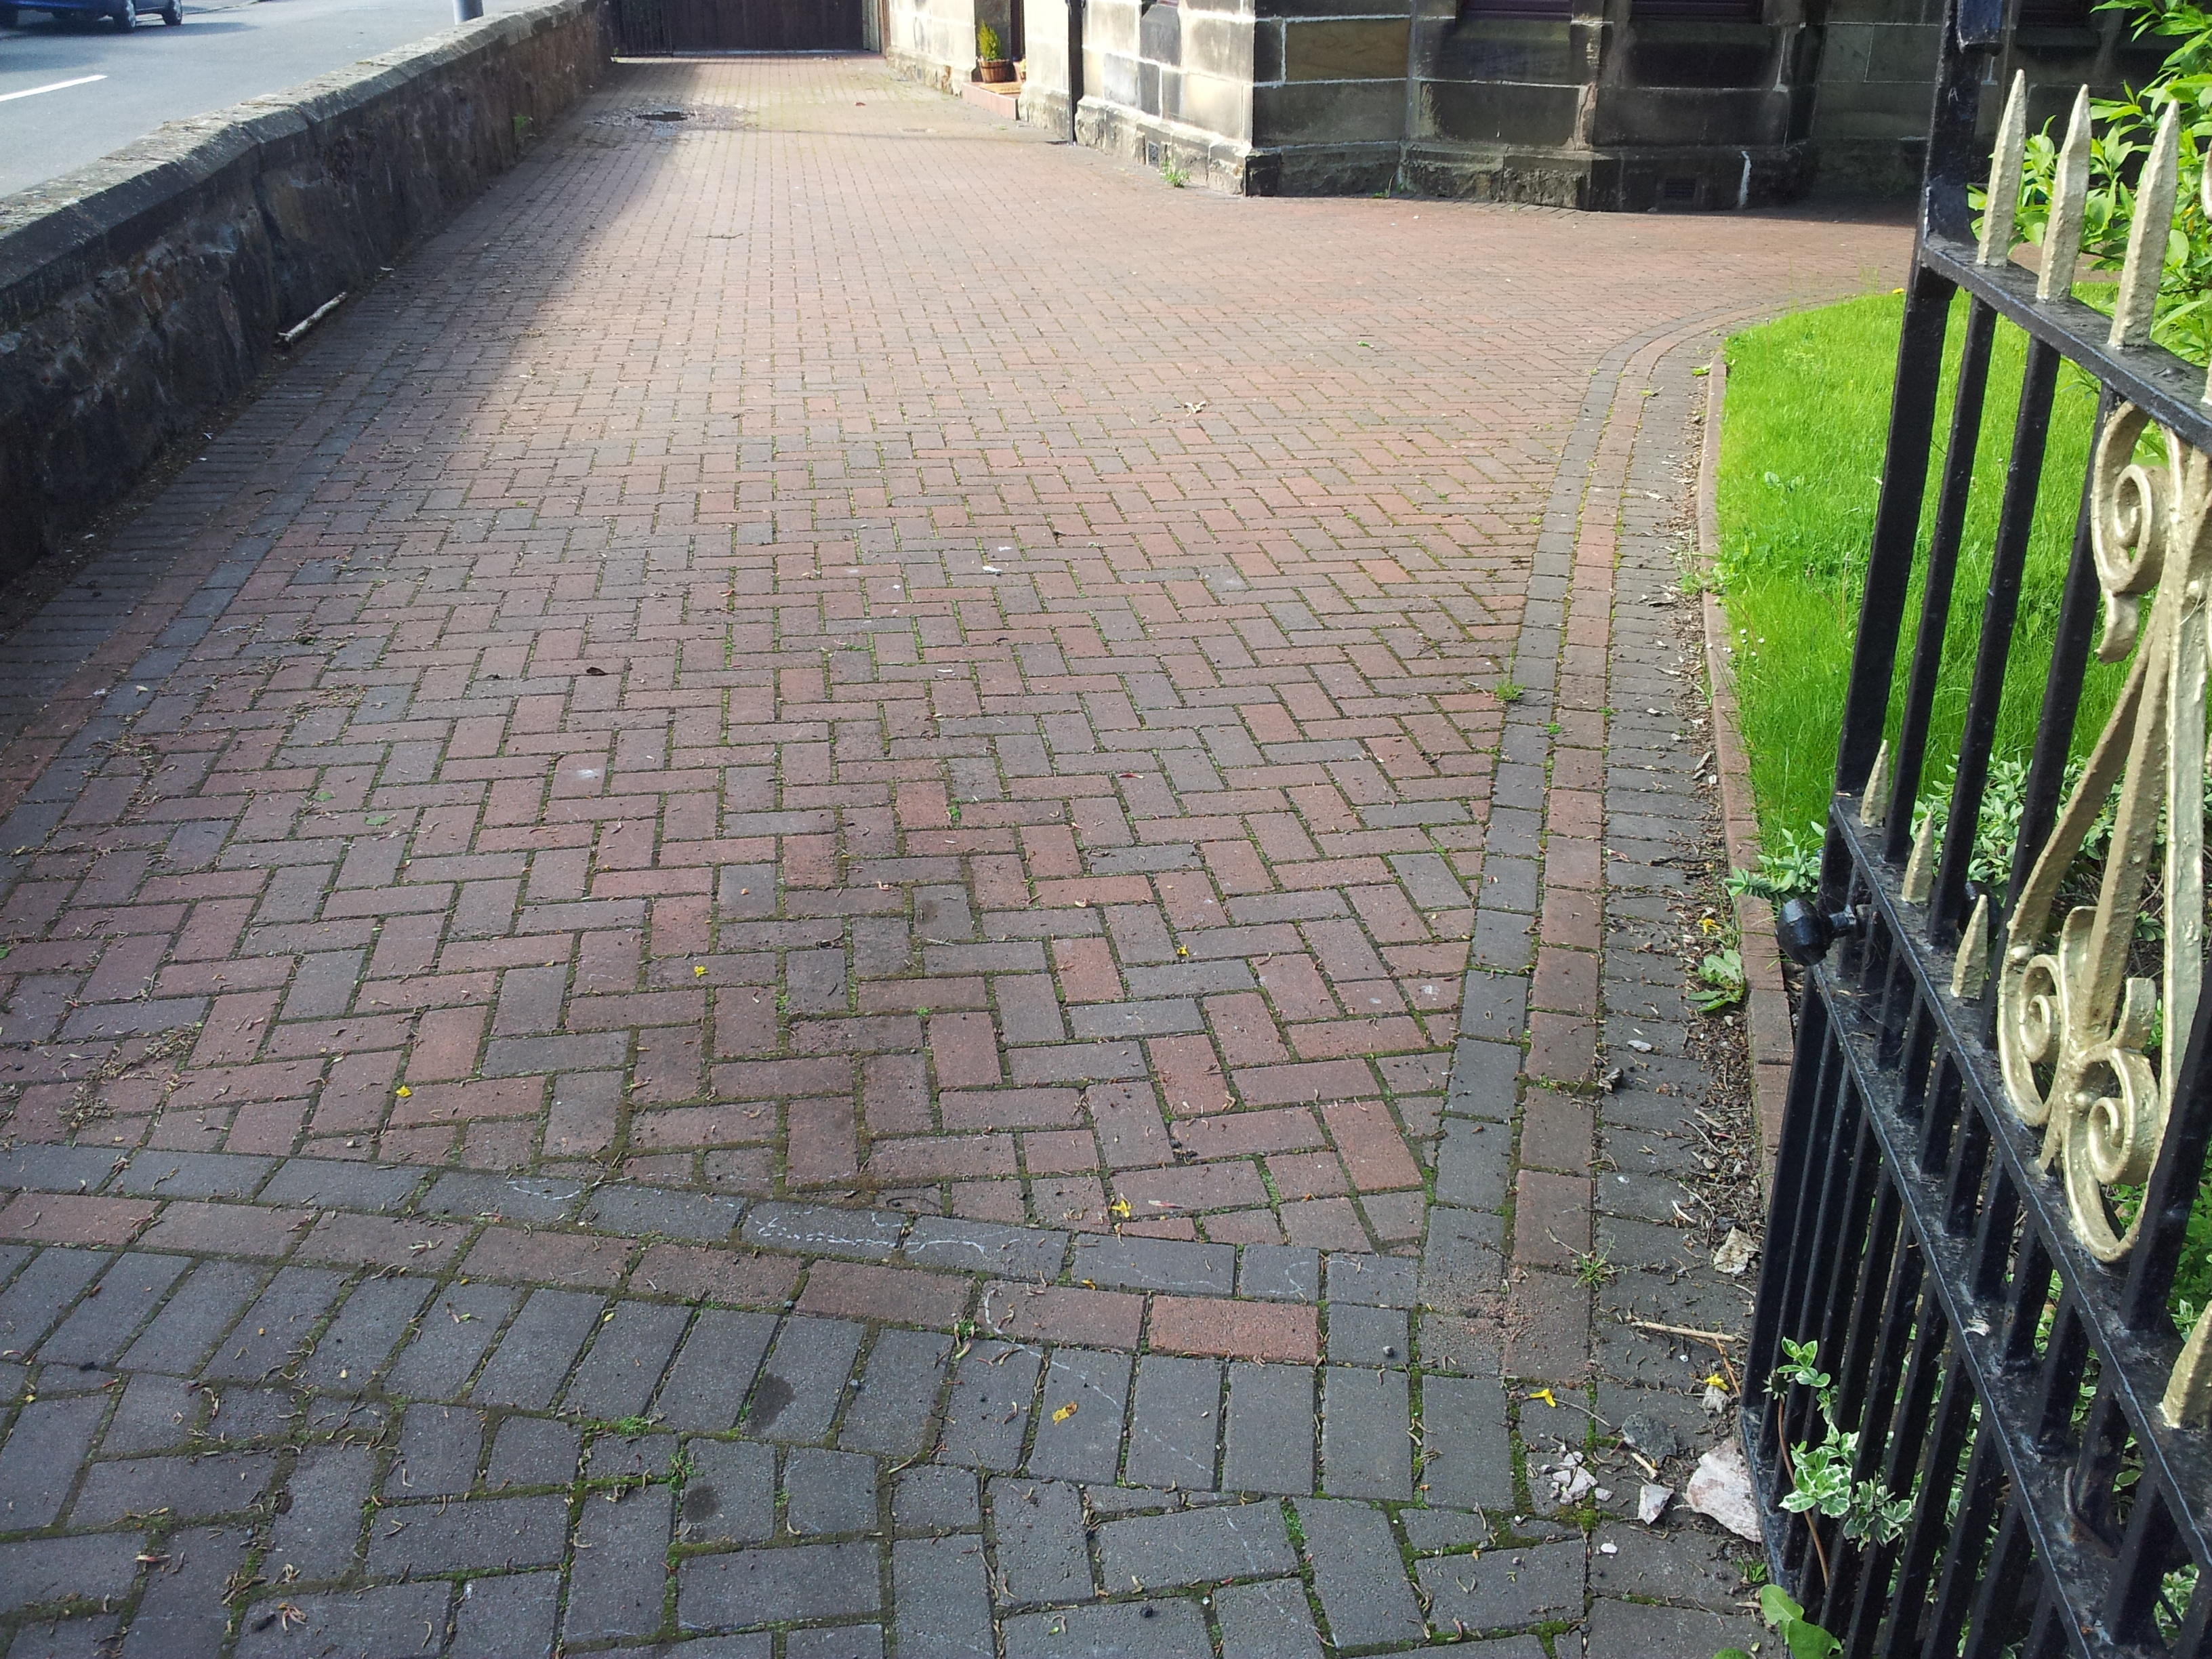 Monoblock Driveway Cleaning Glasgow - Clydebank